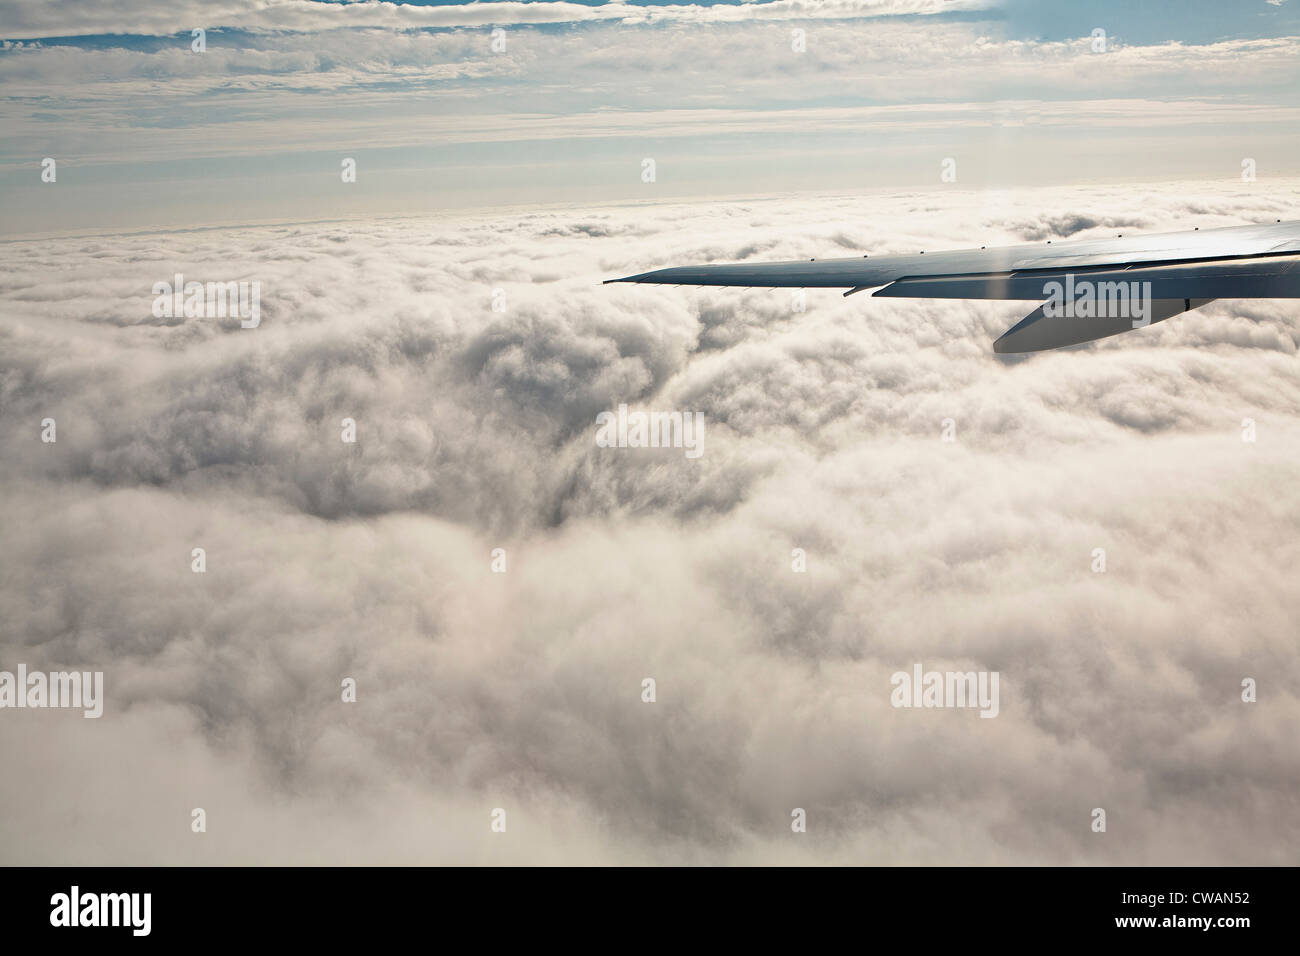 Aeroplane wing and clouds - Stock Image